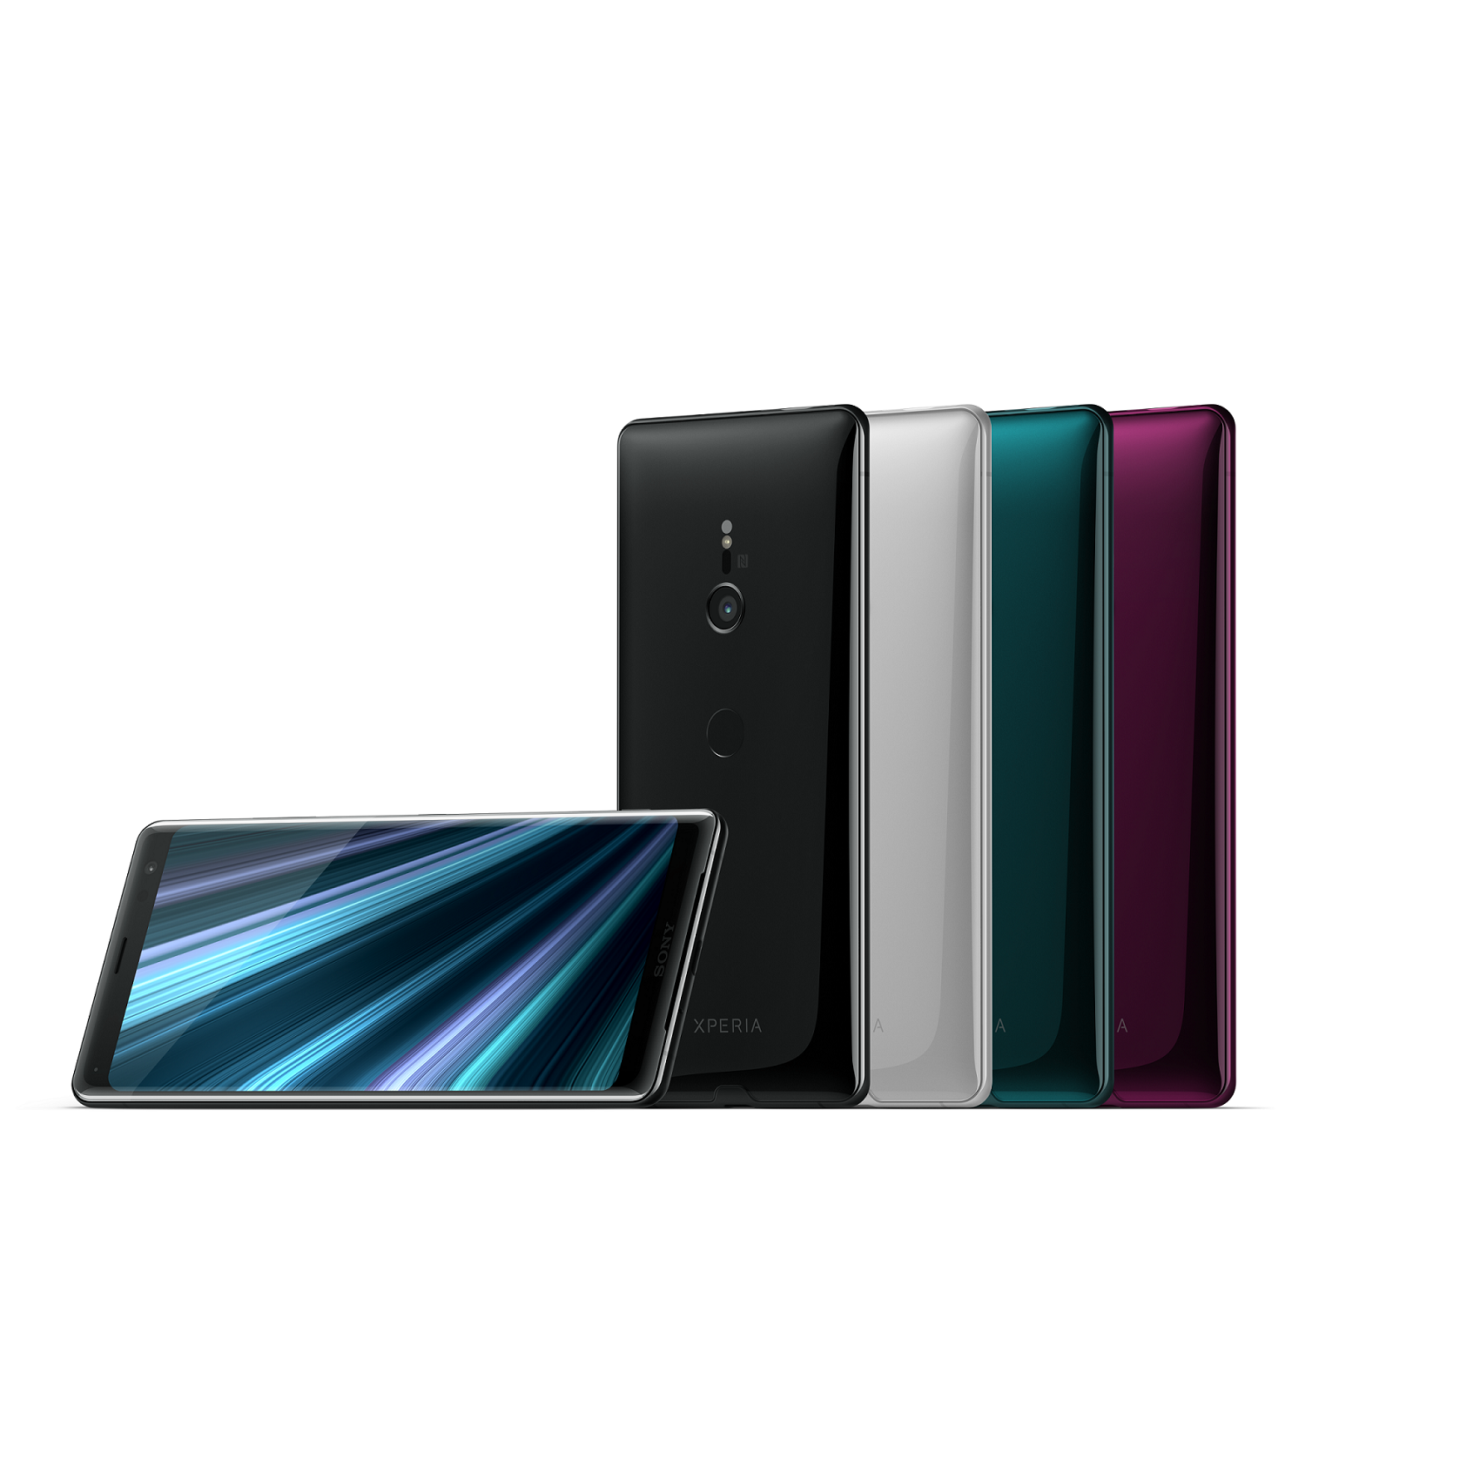 xperia-xz3_group_back40_front40